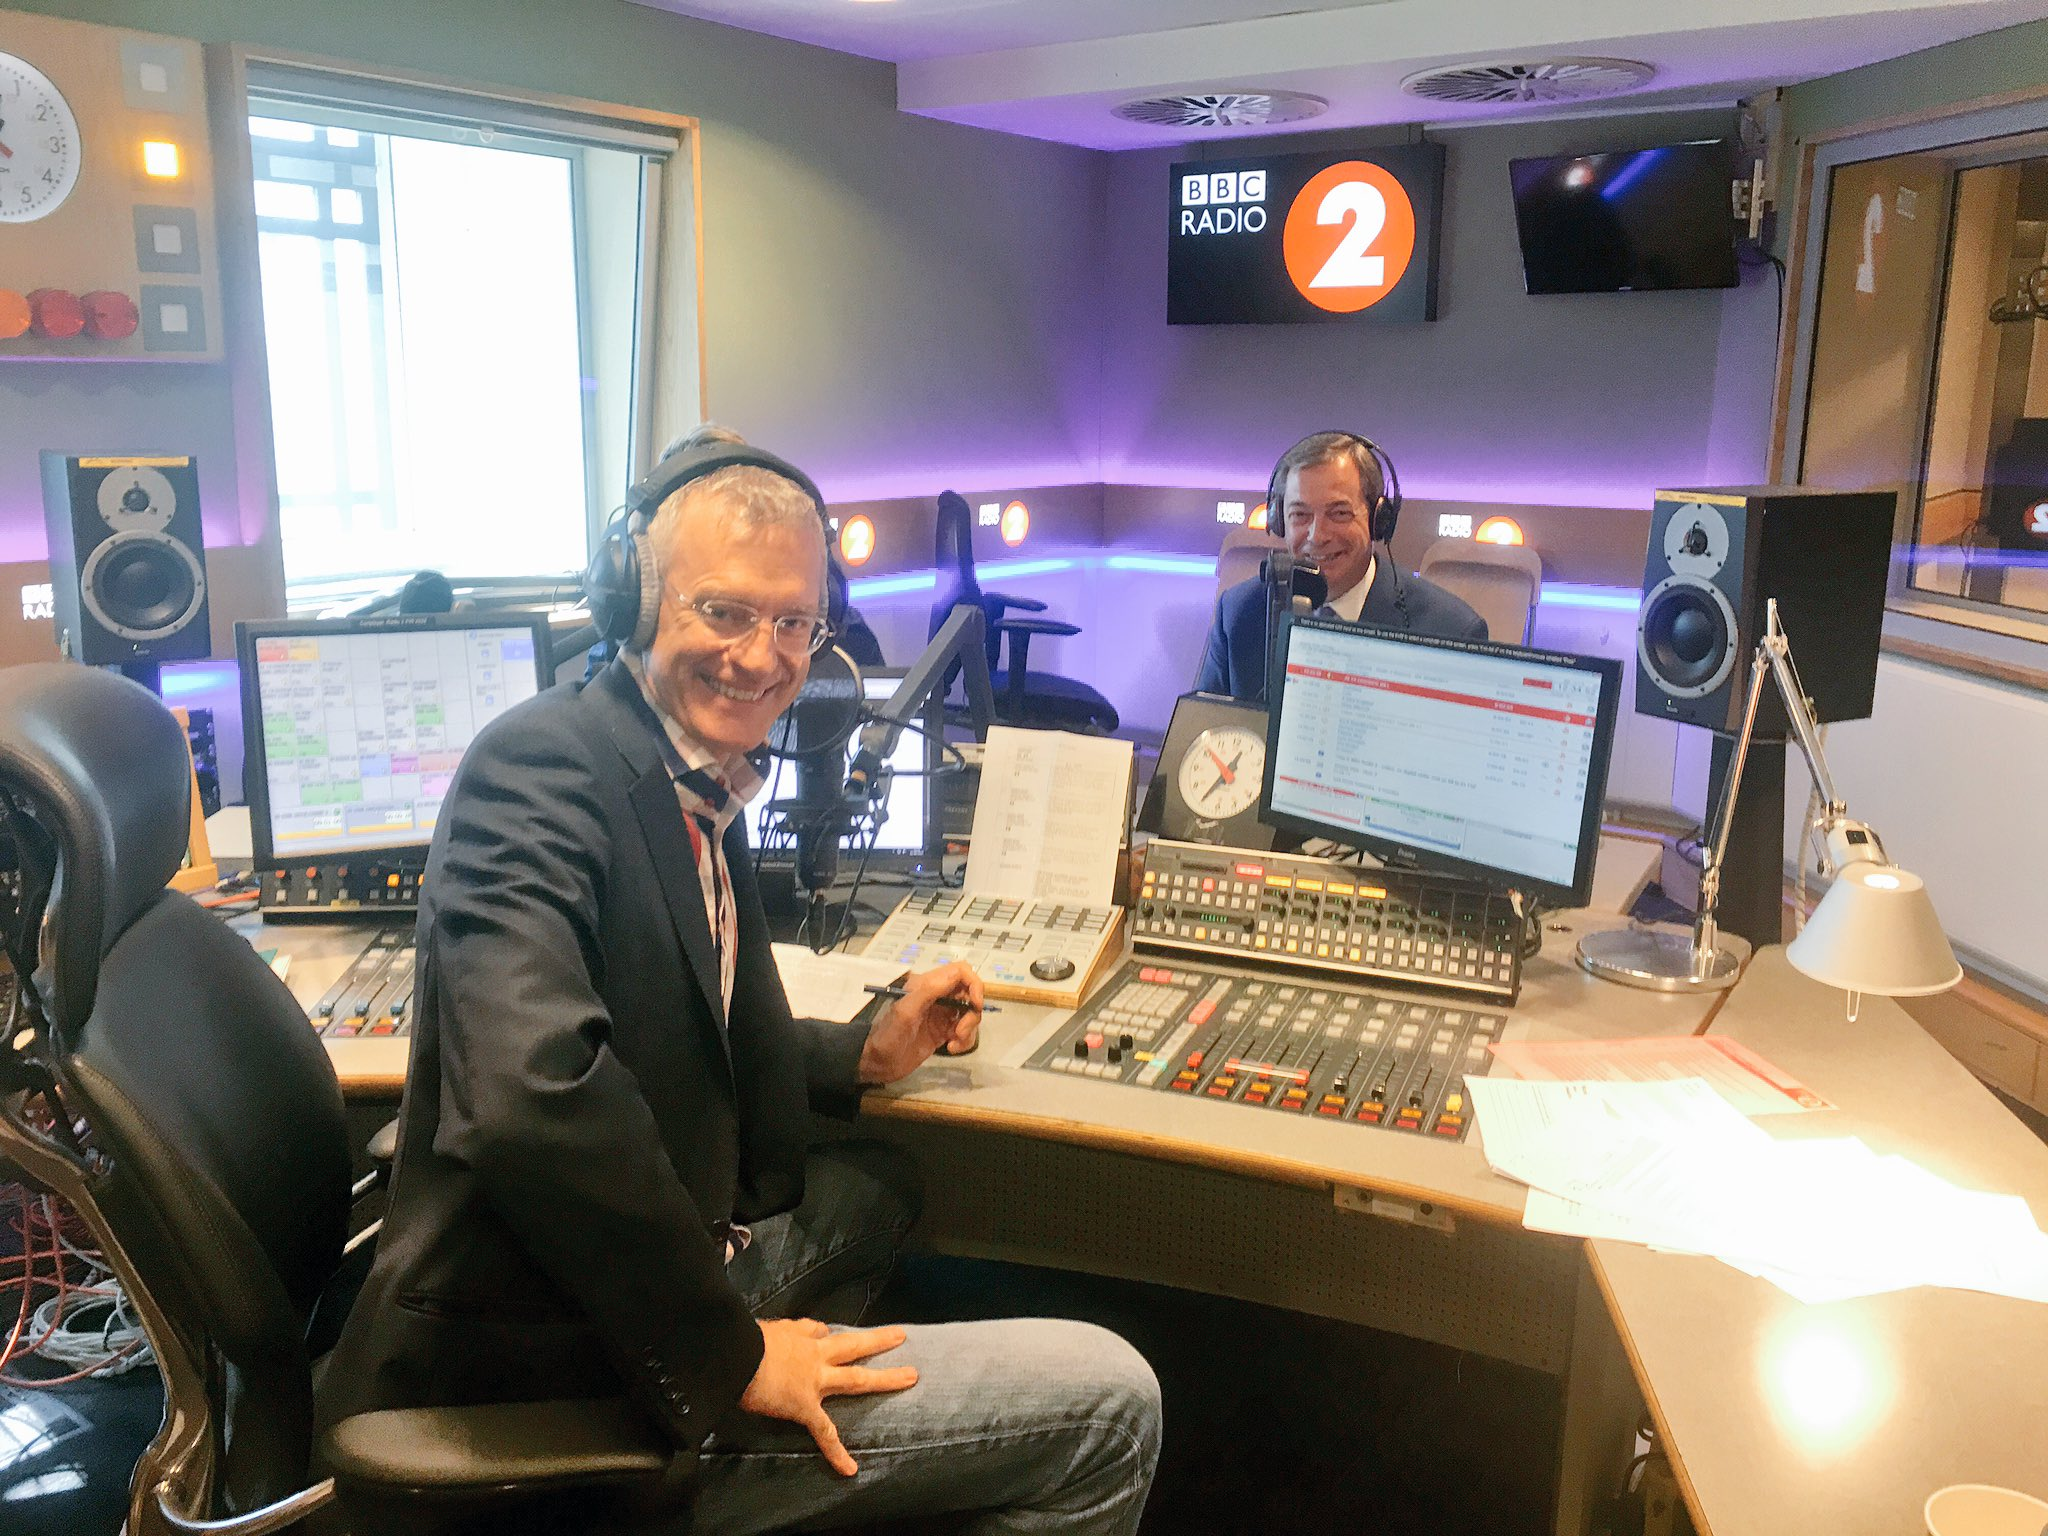 Thanks for having me on today @theJeremyVine! @BBCRadio2 https://t.co/I6vswOj1xs